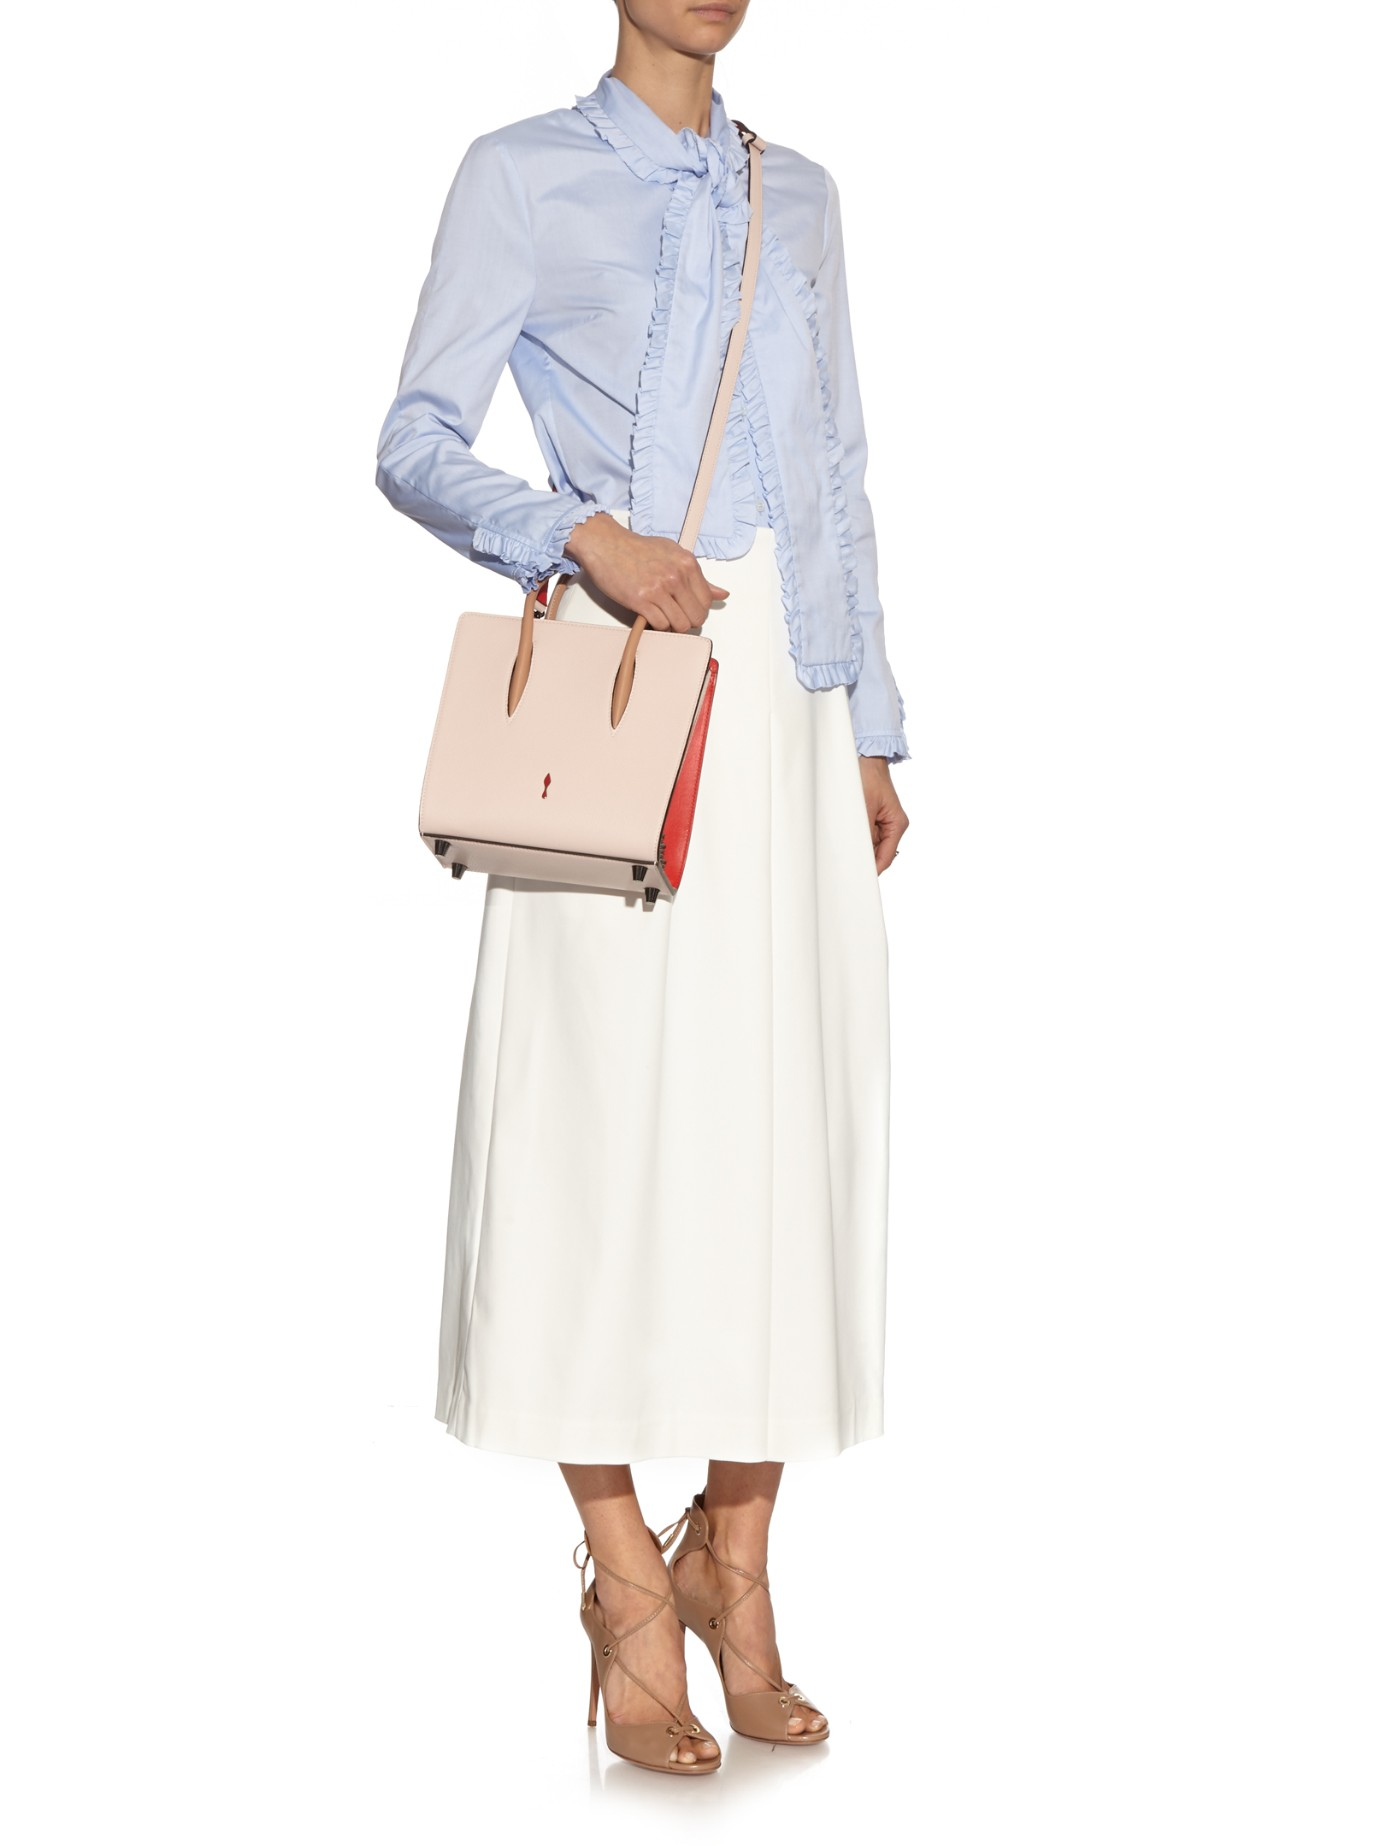 Lyst Christian Louboutin Paloma Small Leather Tote In